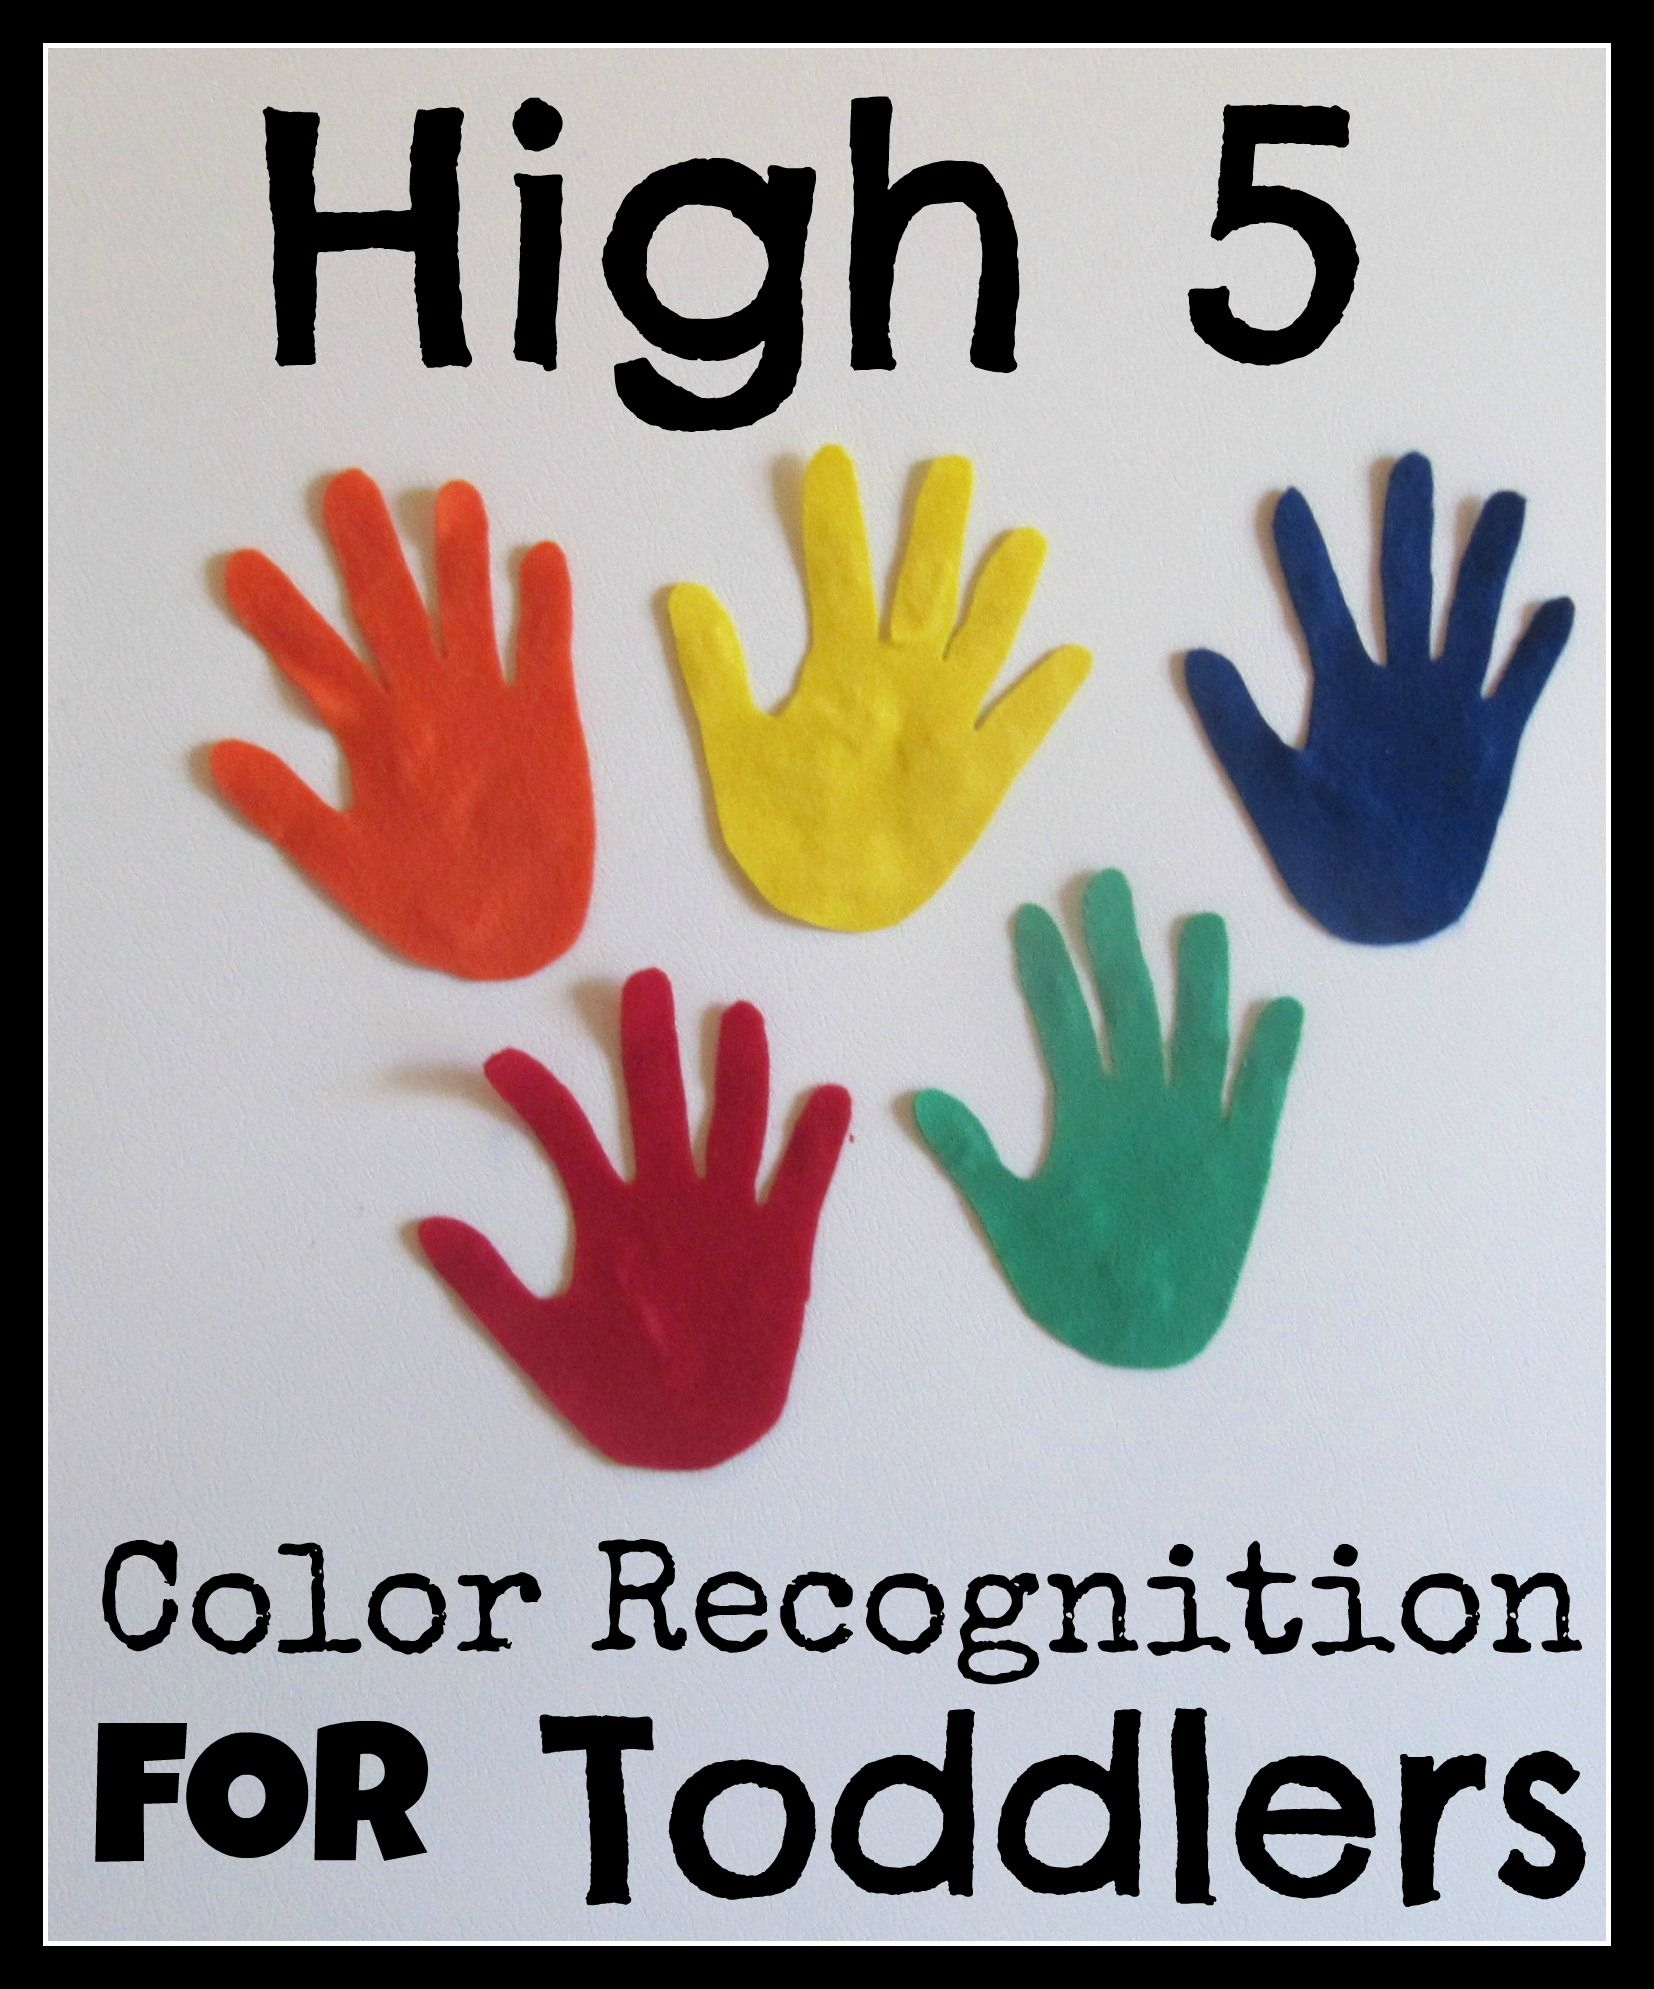 Activities for colors for toddlers - Color Recognition You Can Use Foam Or Paper Instead Of Felt